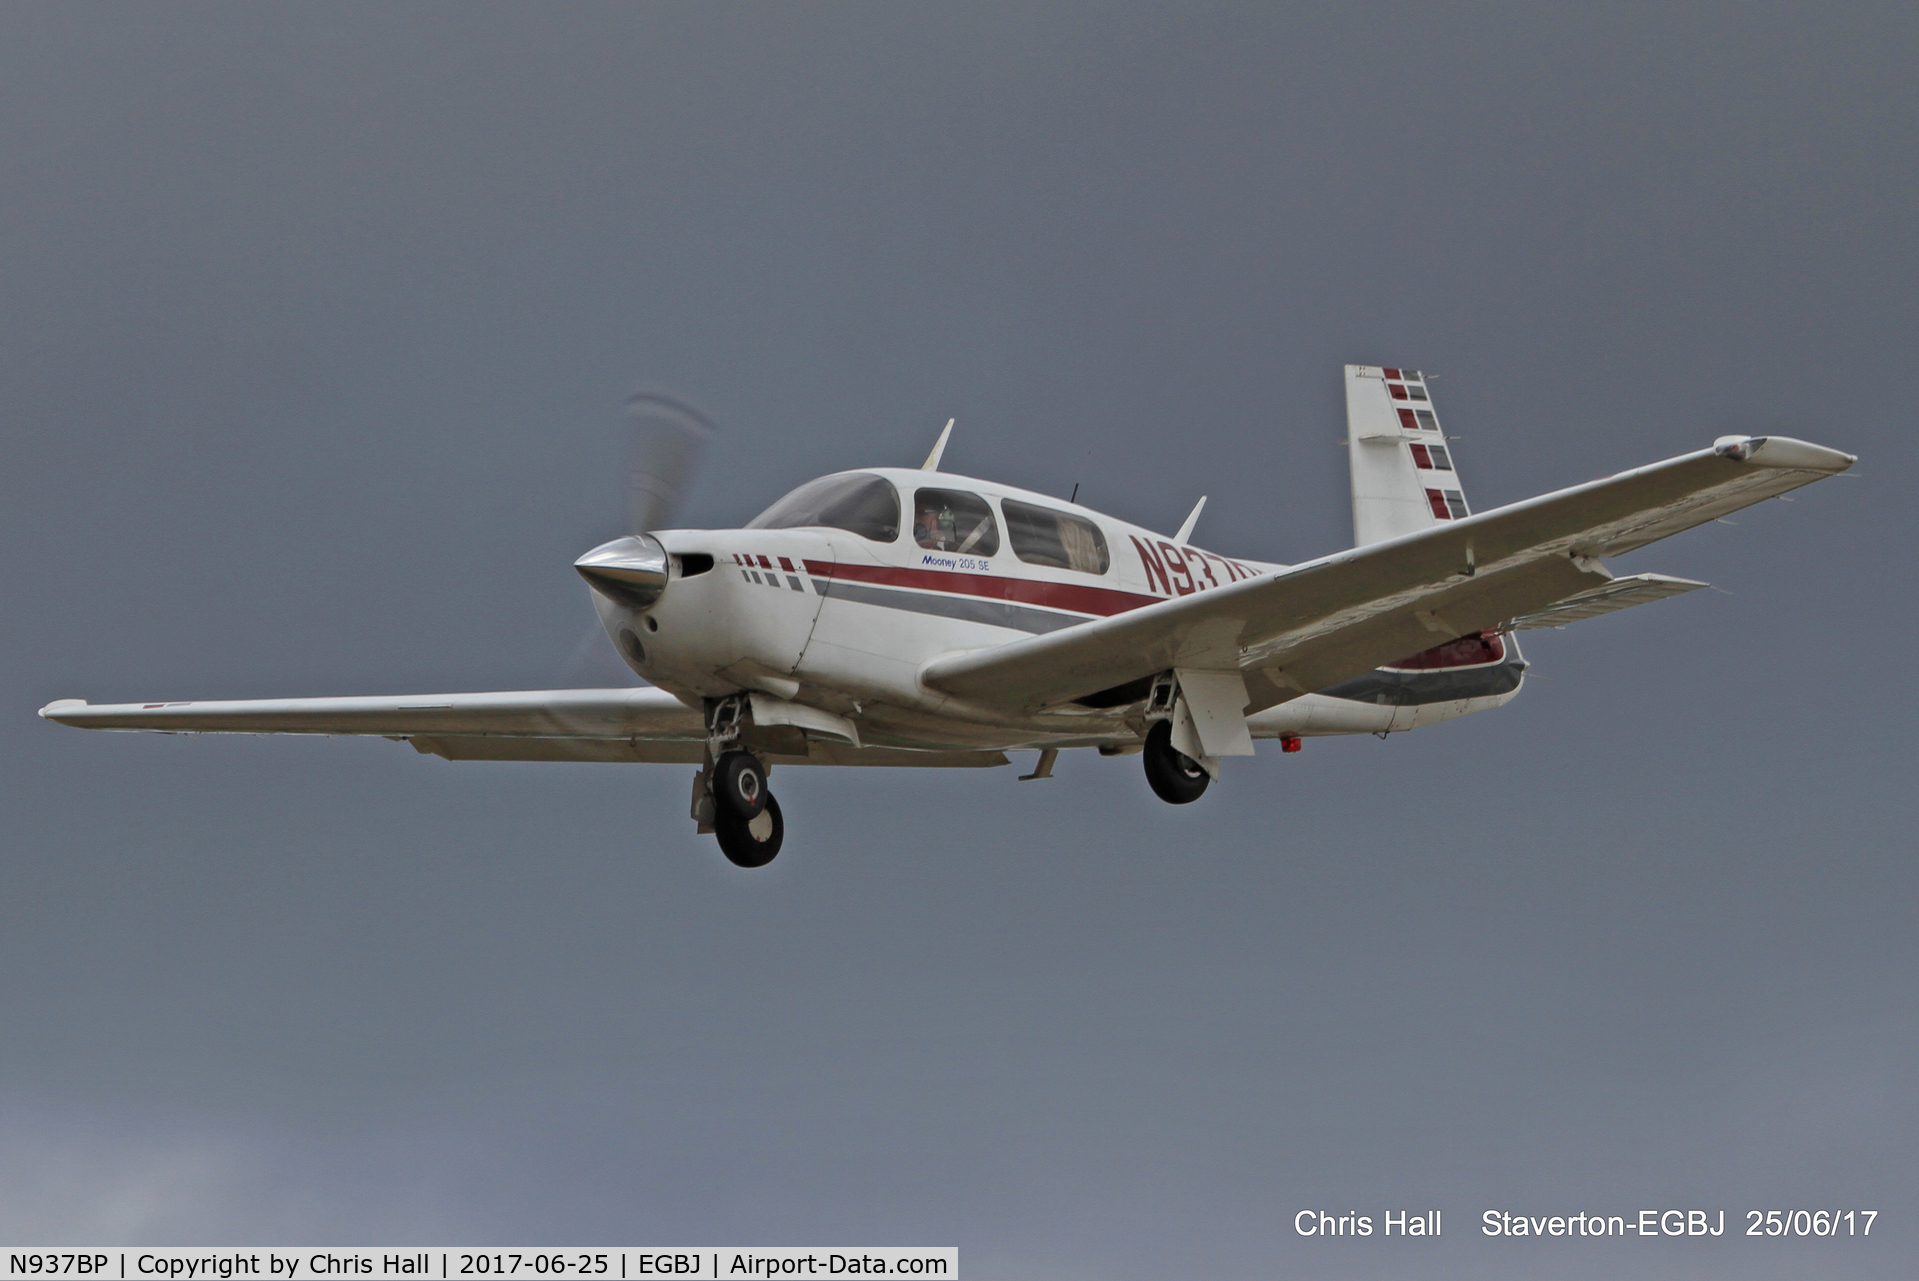 N937BP, 1987 Mooney M20J 201 C/N 24-3046, Project Propeller at Staverton